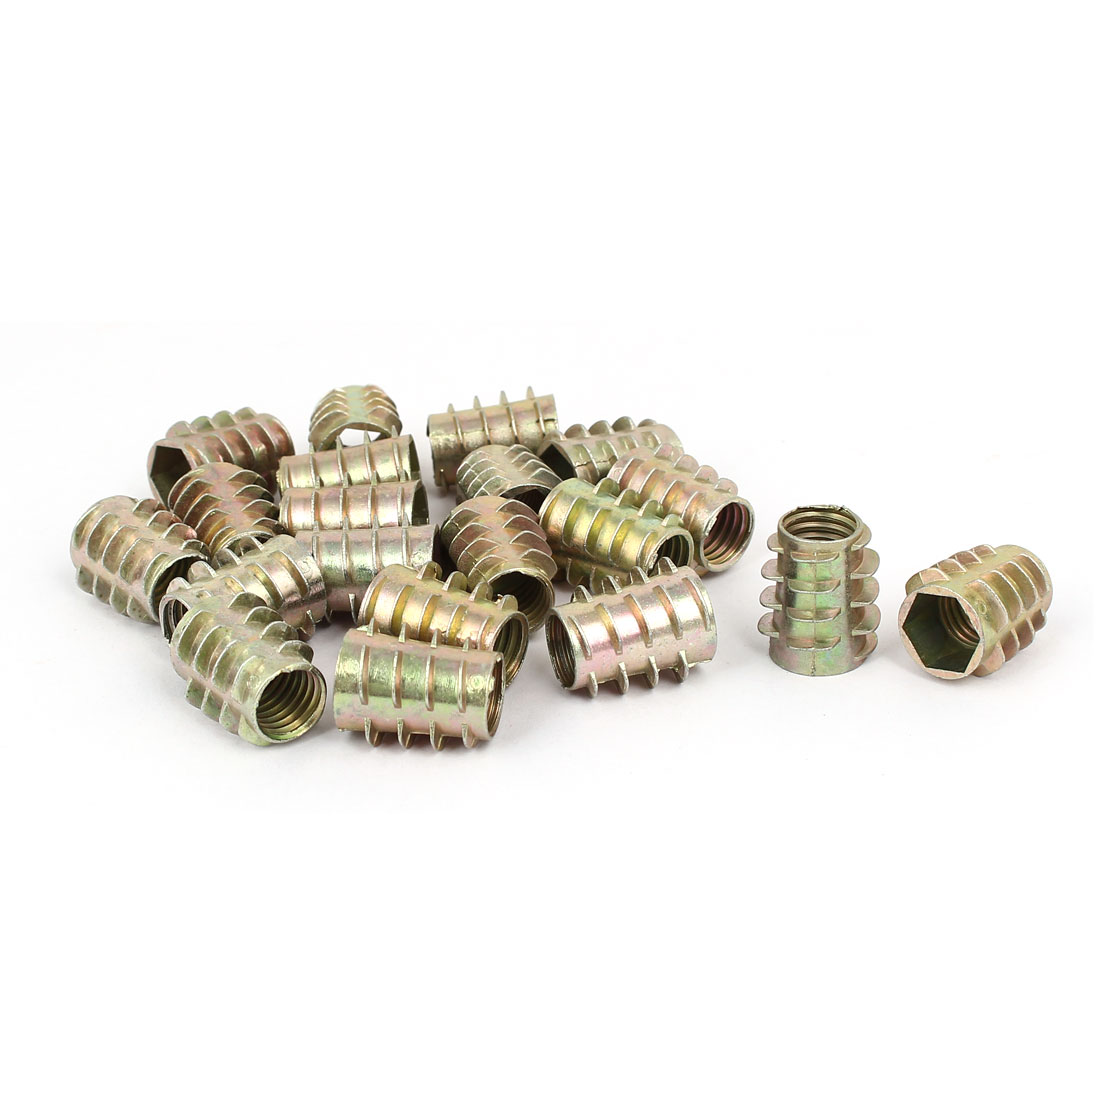 Wood Furniture Zinc Alloy Hex Socket Insert Screws E-Nuts M10x20mm 20pcs